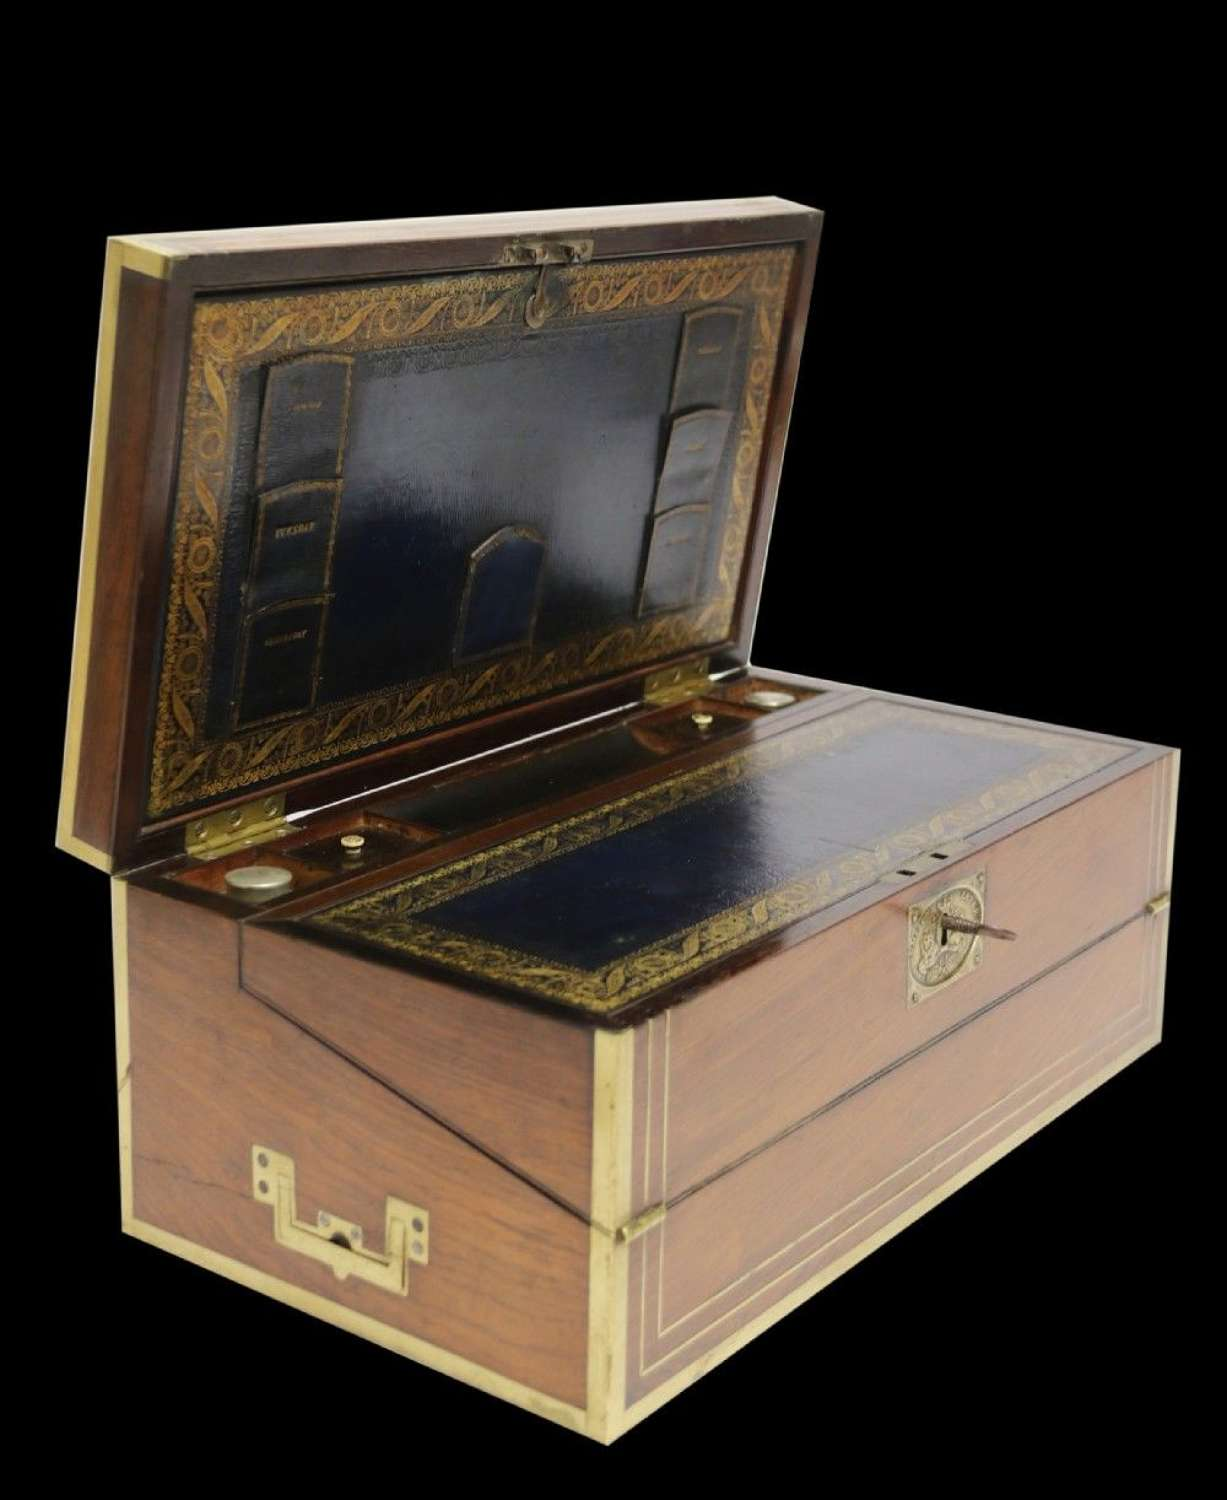 A Superb Early 19th C Gentleman's Brass Mounted Campaign Writing Box